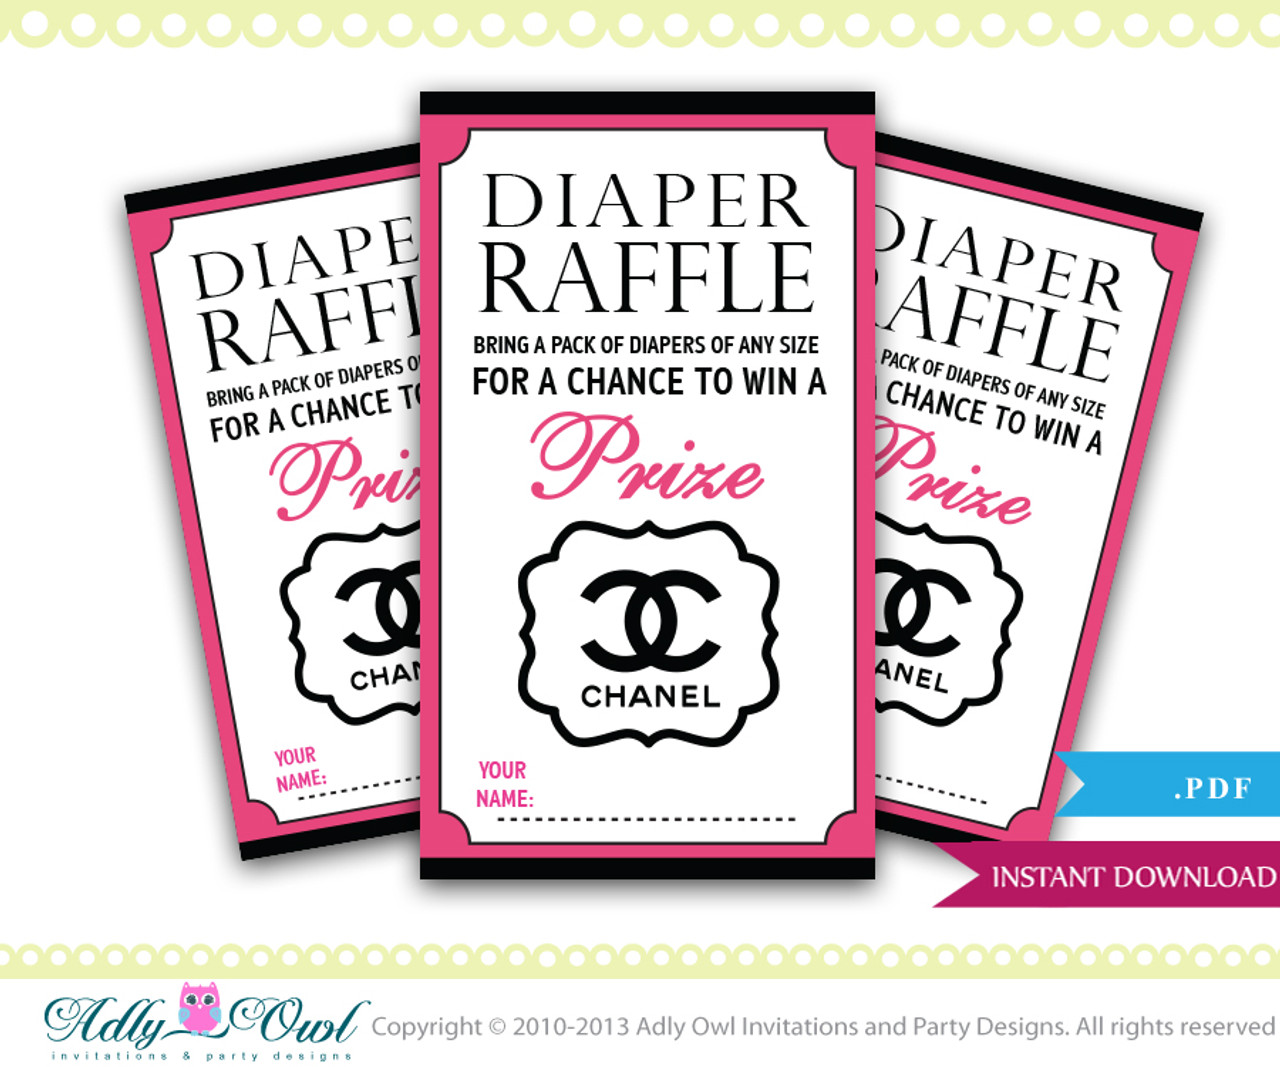 photo regarding Chanel Printable known as Chanel Diaper Raffle for Kid Shower Printable tickets for a large style little one shower, tasteful, cly, fantastic - Simply just electronic record - ao67